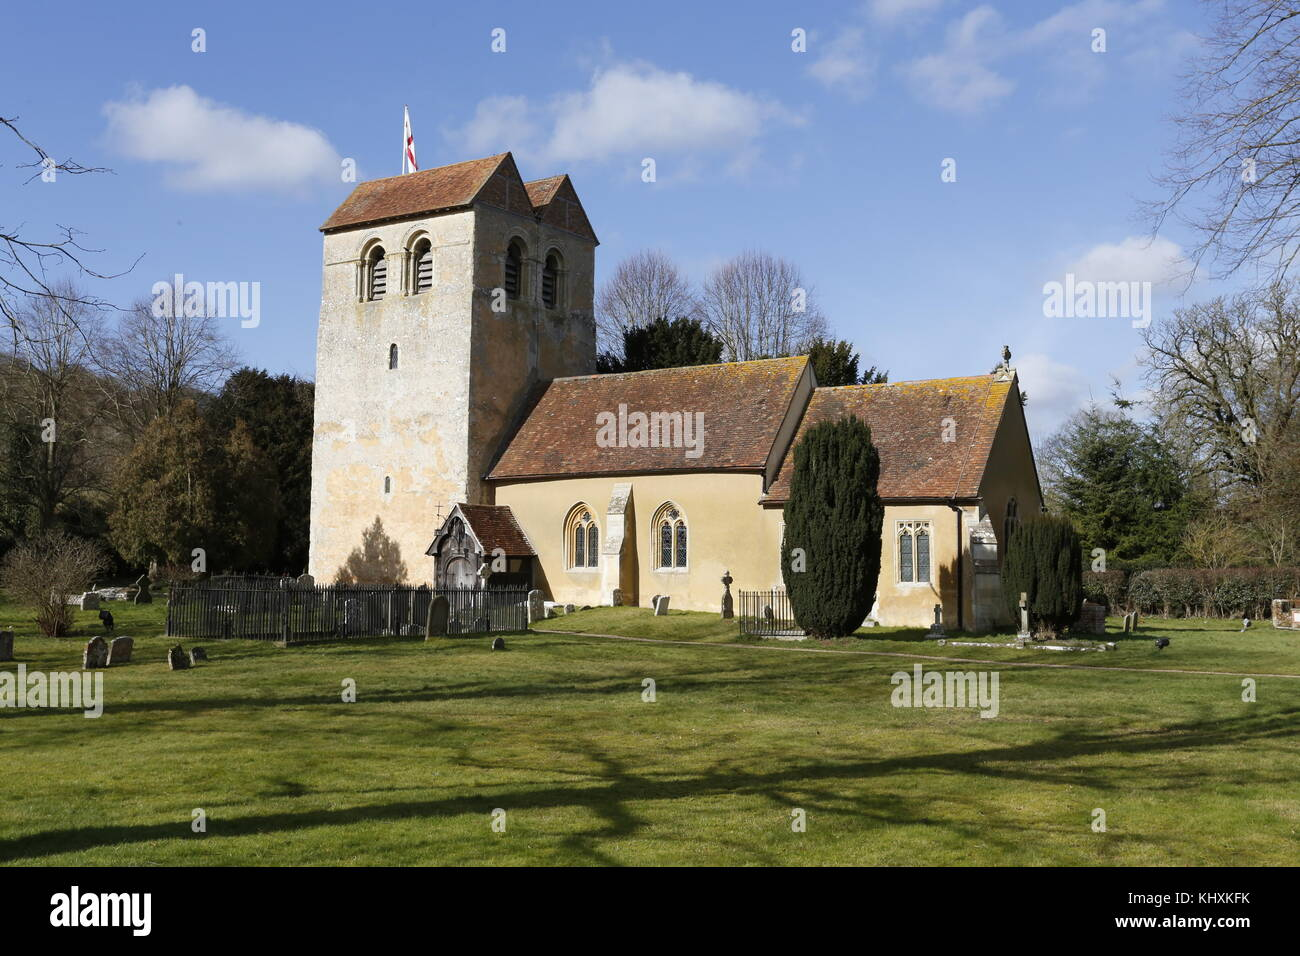 Saint Bartholomew Parish Church,Fingest ,Buckinghamshire. - Stock Image